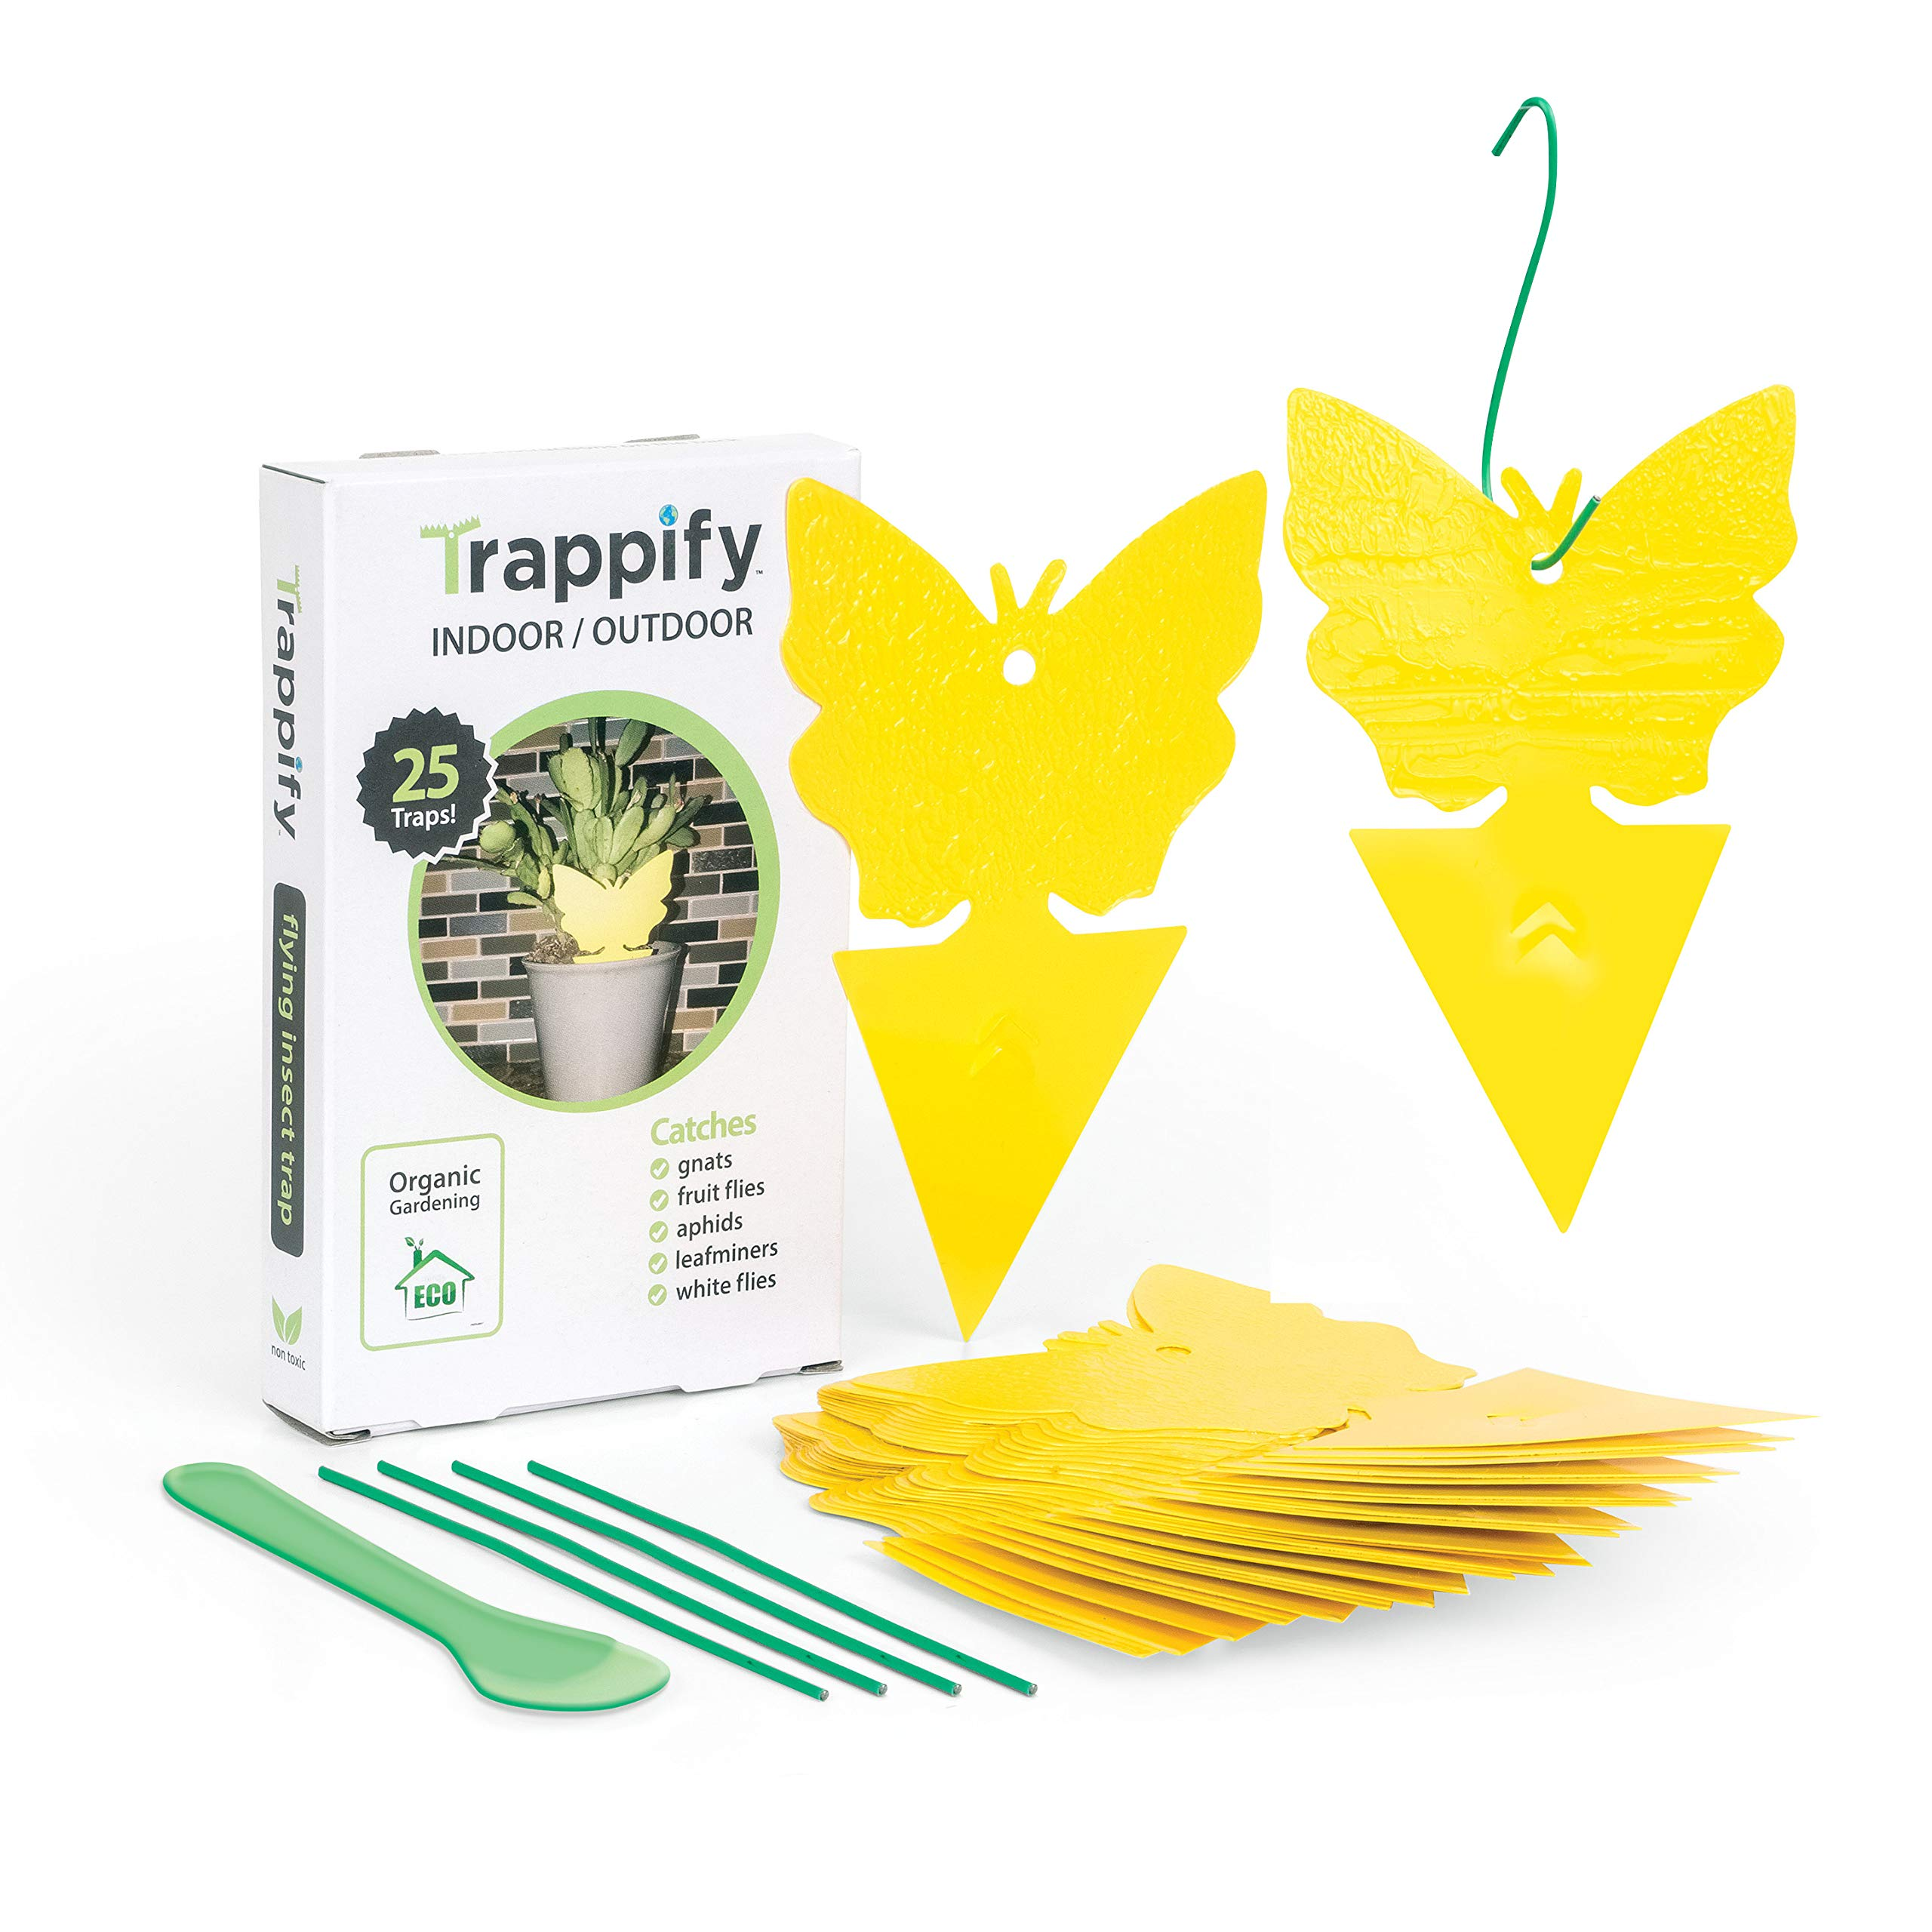 Trappify Sticky Fruit Fly and Gnat Trap Yellow Sticky Bug Traps for Indoor/Outdoor Use - Insect Catcher for White Flies, Mosquitos, Fungus Gnats, Flying Insects - Disposable Glue Trappers - 25 Pk by Trappify